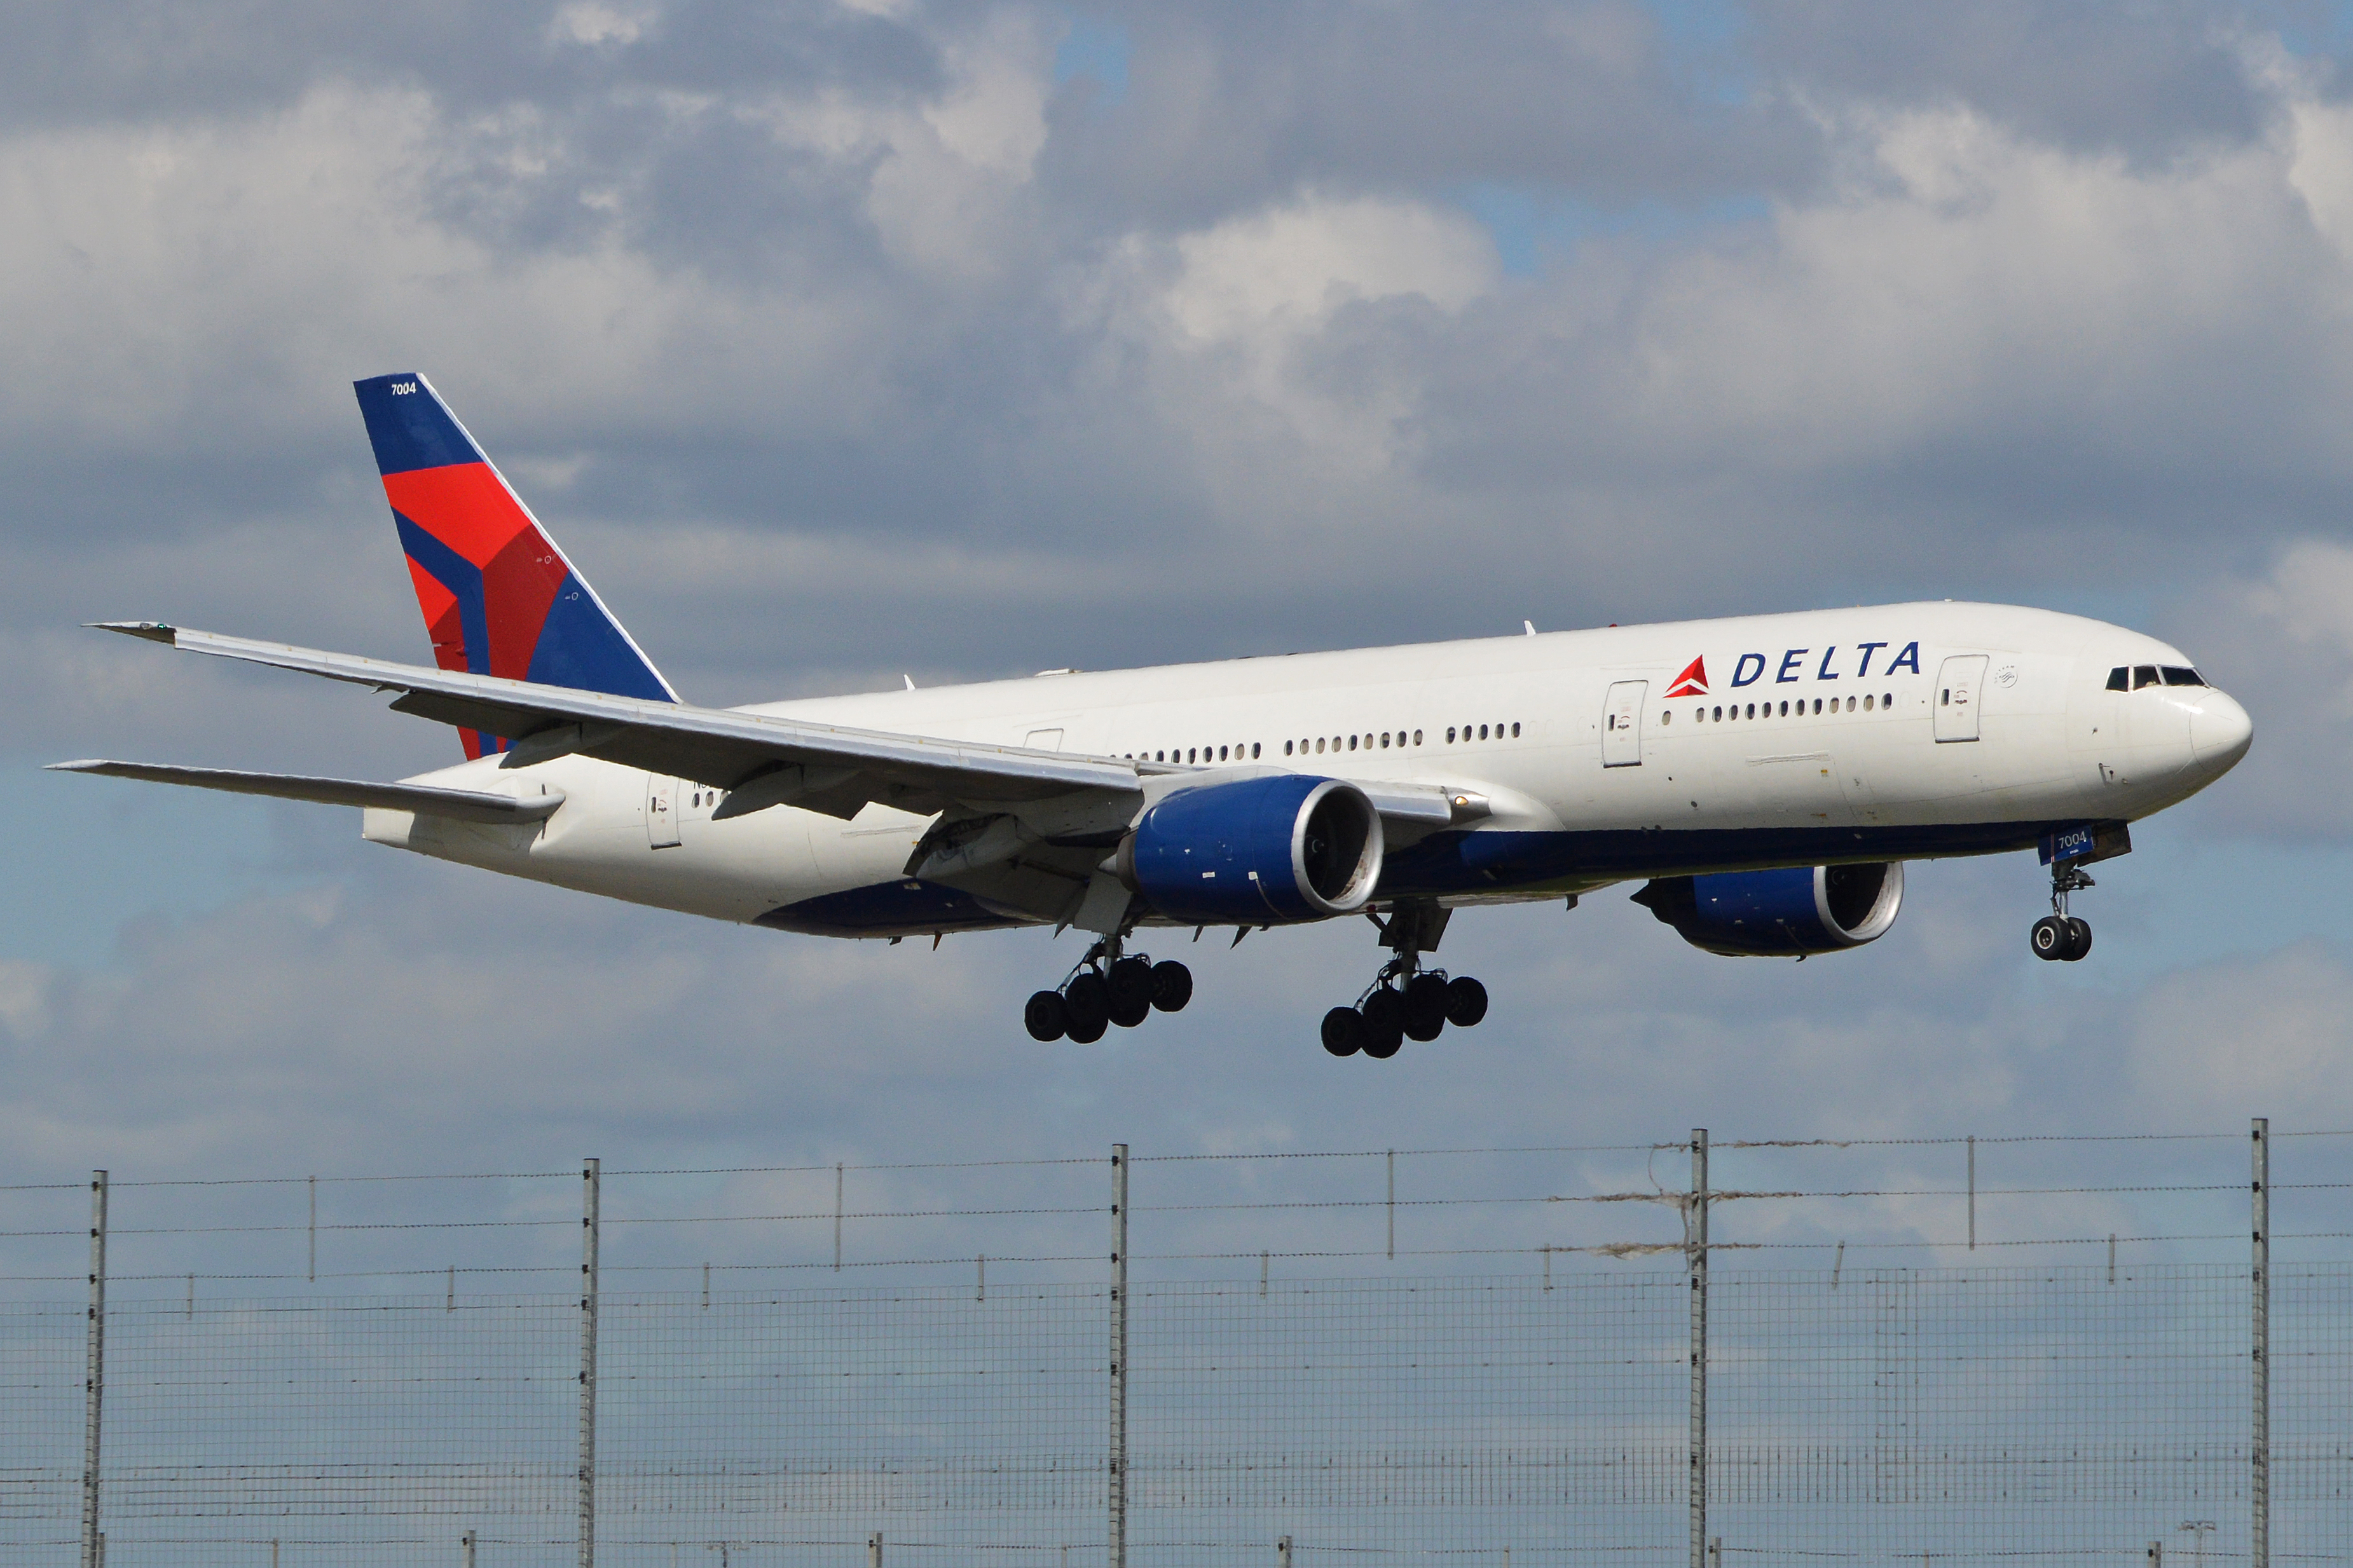 delta airlines application under review